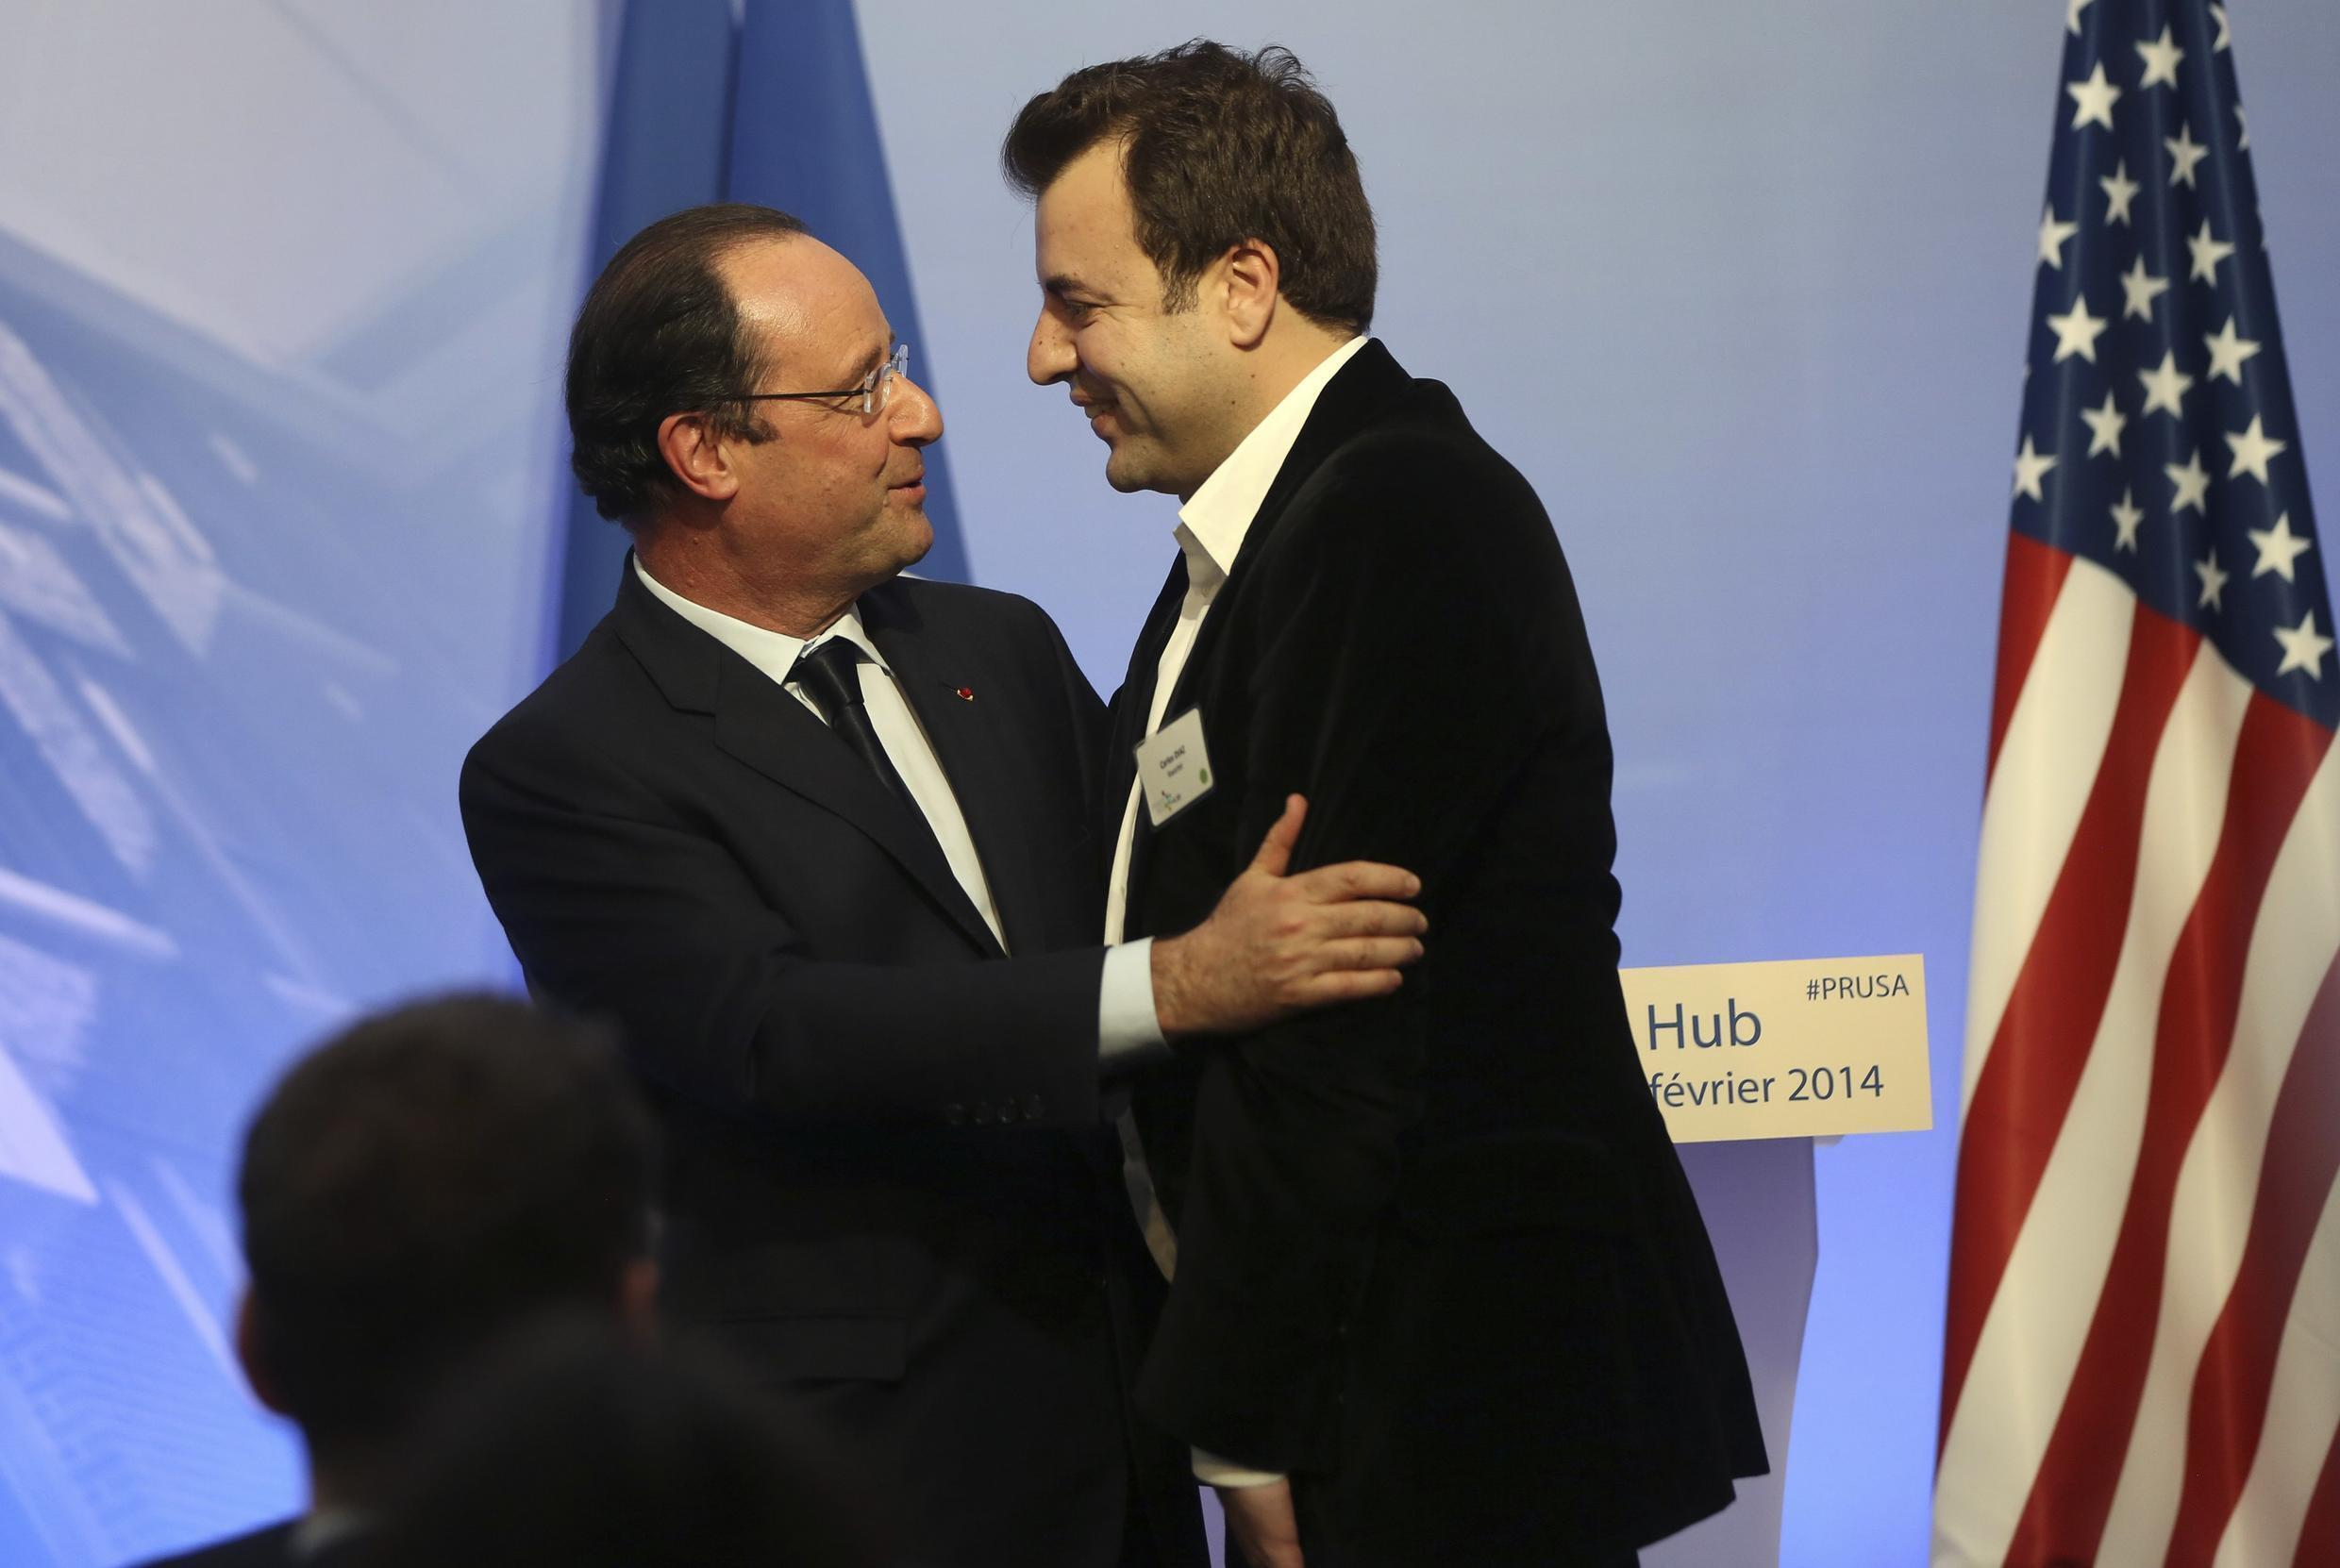 French President Francois Hollande (L) embraces CEO and co-founder of Kwarter Carlos Diaz on his visit to Silicon Valley